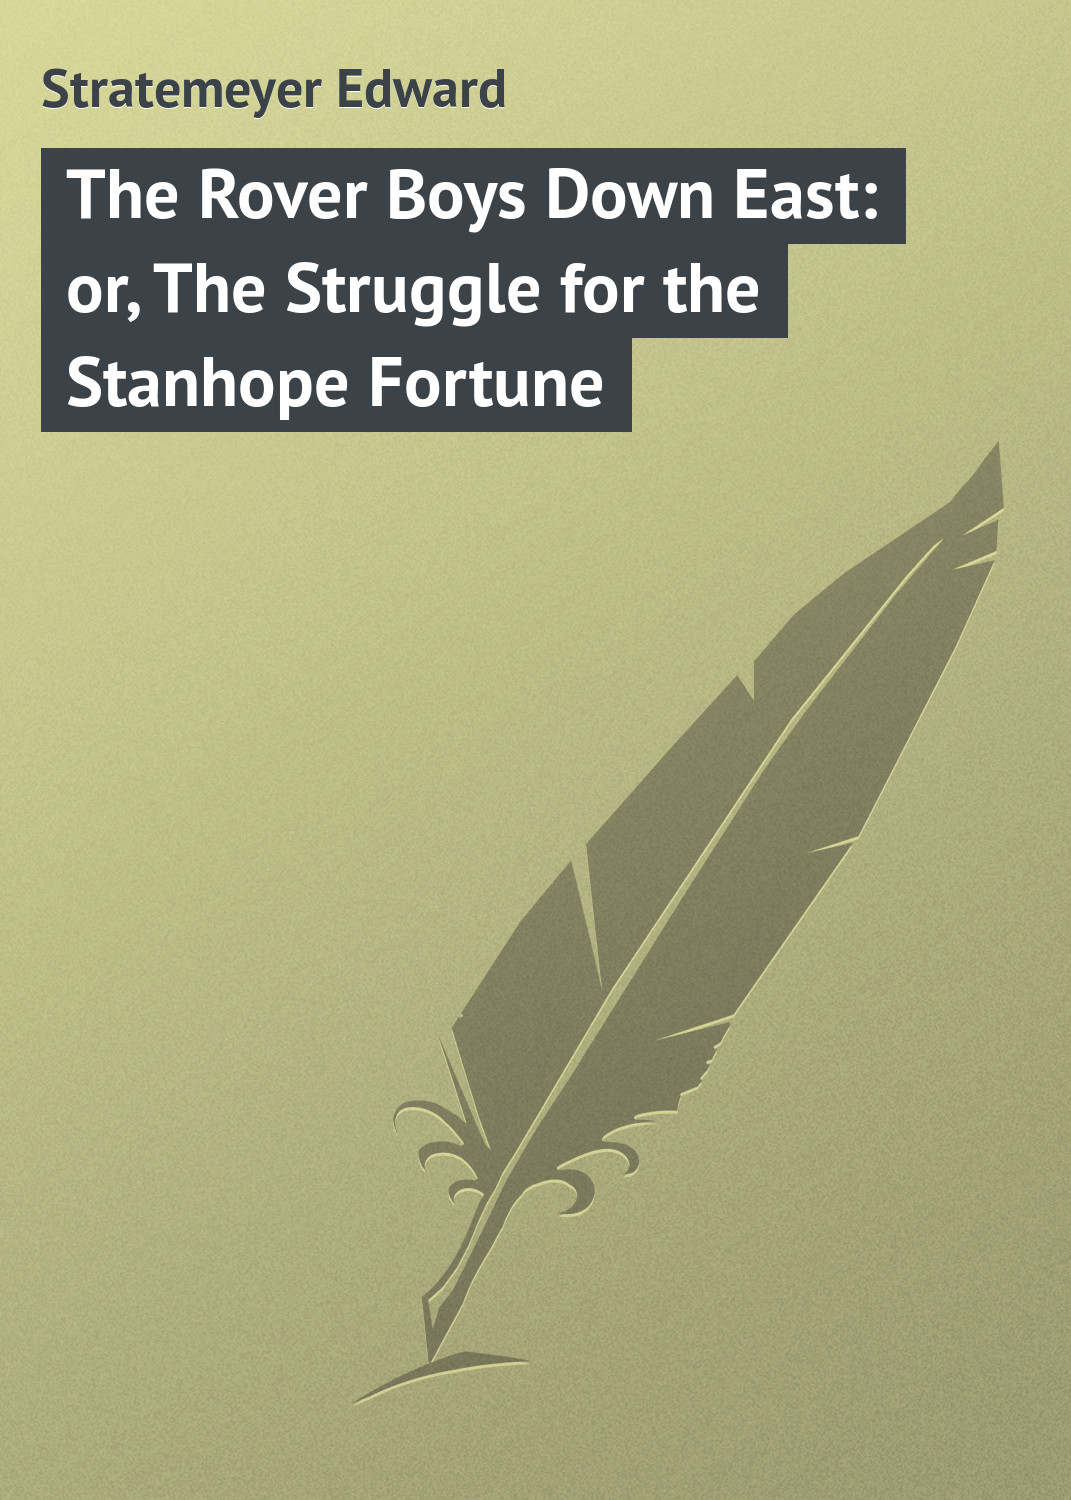 лучшая цена Stratemeyer Edward The Rover Boys Down East: or, The Struggle for the Stanhope Fortune